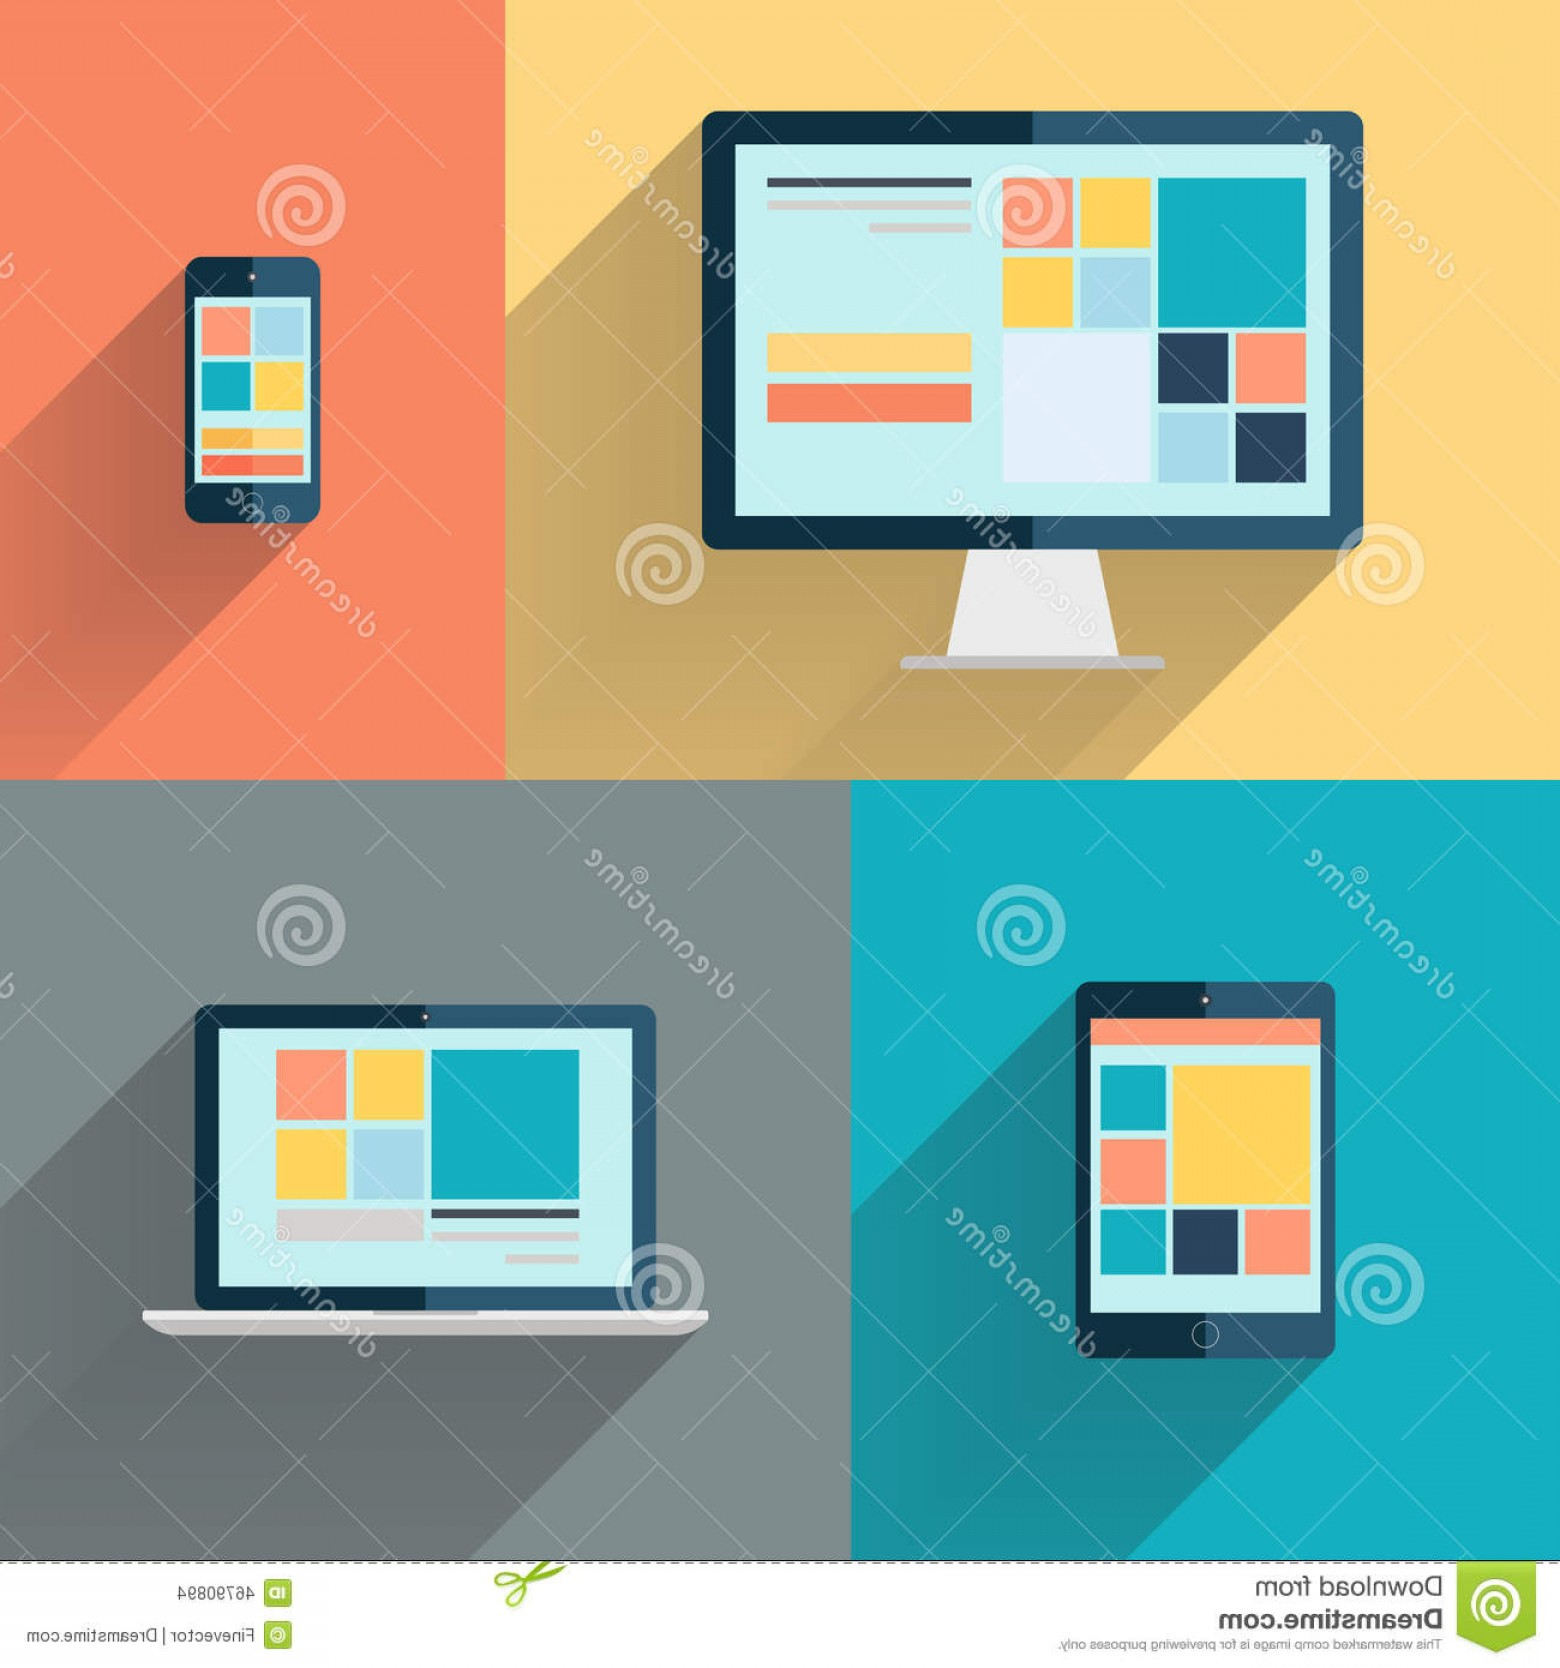 Computer Vector Icon Flat: Stock Illustration Desktop Computer Laptop Tablet Smart Phone Color Background Vector Illustration Flat Image